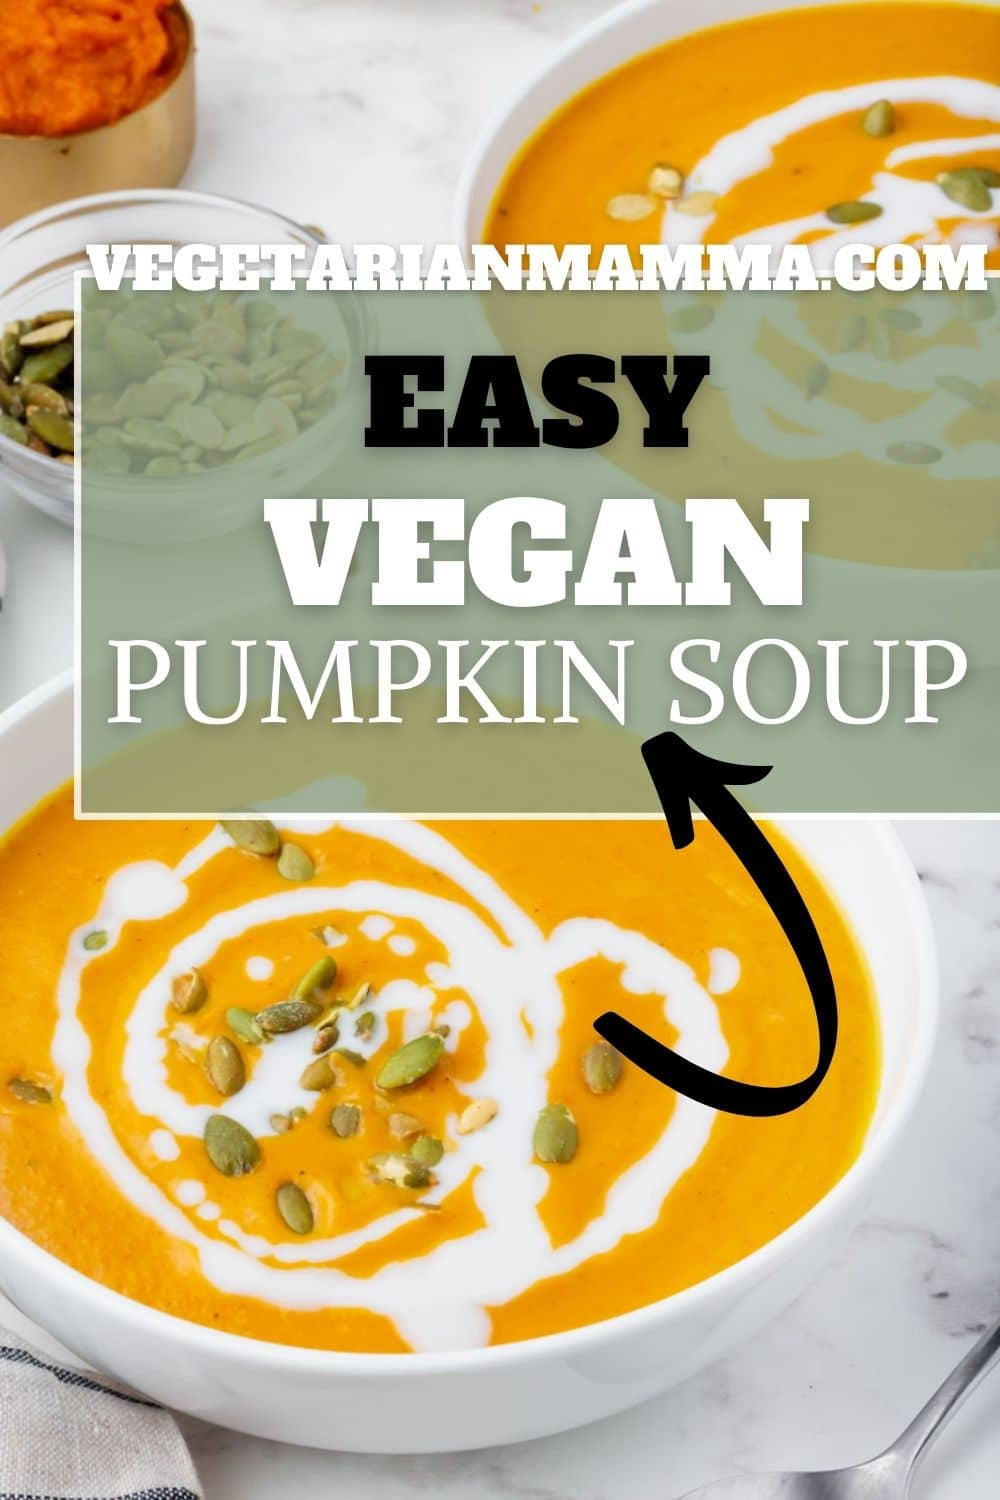 Vegan Pumpkin Soup is the thick and creamy fall soup of your dreams! Make the most luscious soup with canned pumpkin puree and coconut milk topped with pumpkin seeds for a yummy crunch.